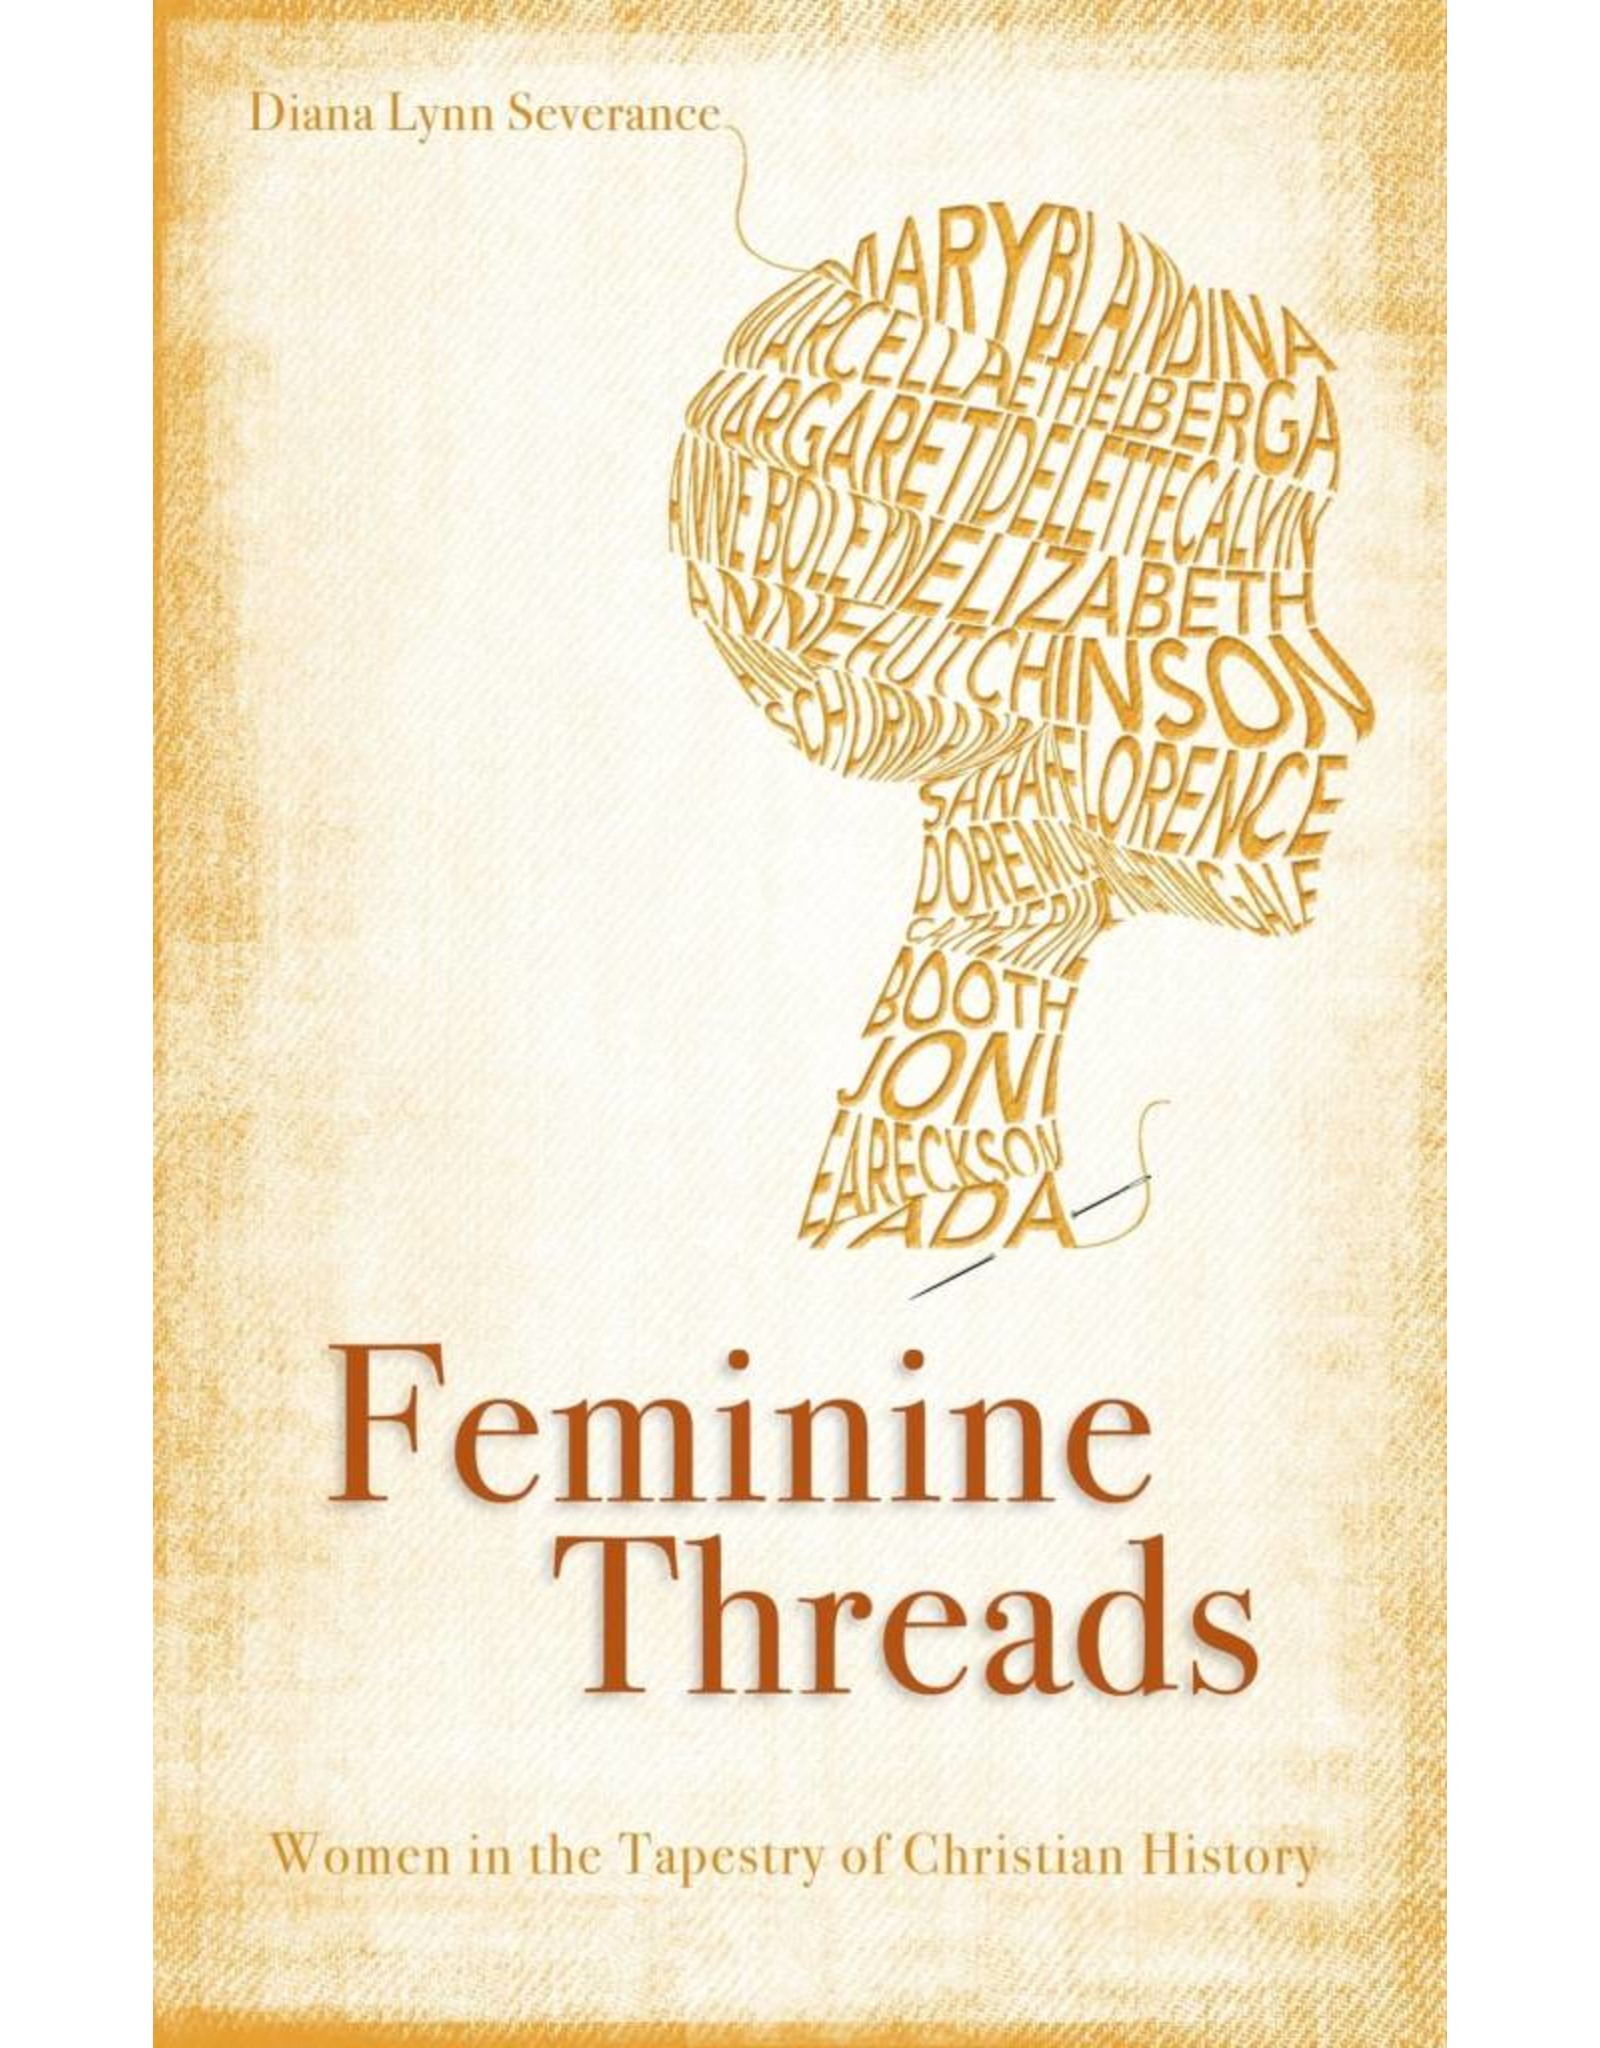 Christian Focus Publications (Atlas) Feminine Threads: Women in the Tapestry of Christian History